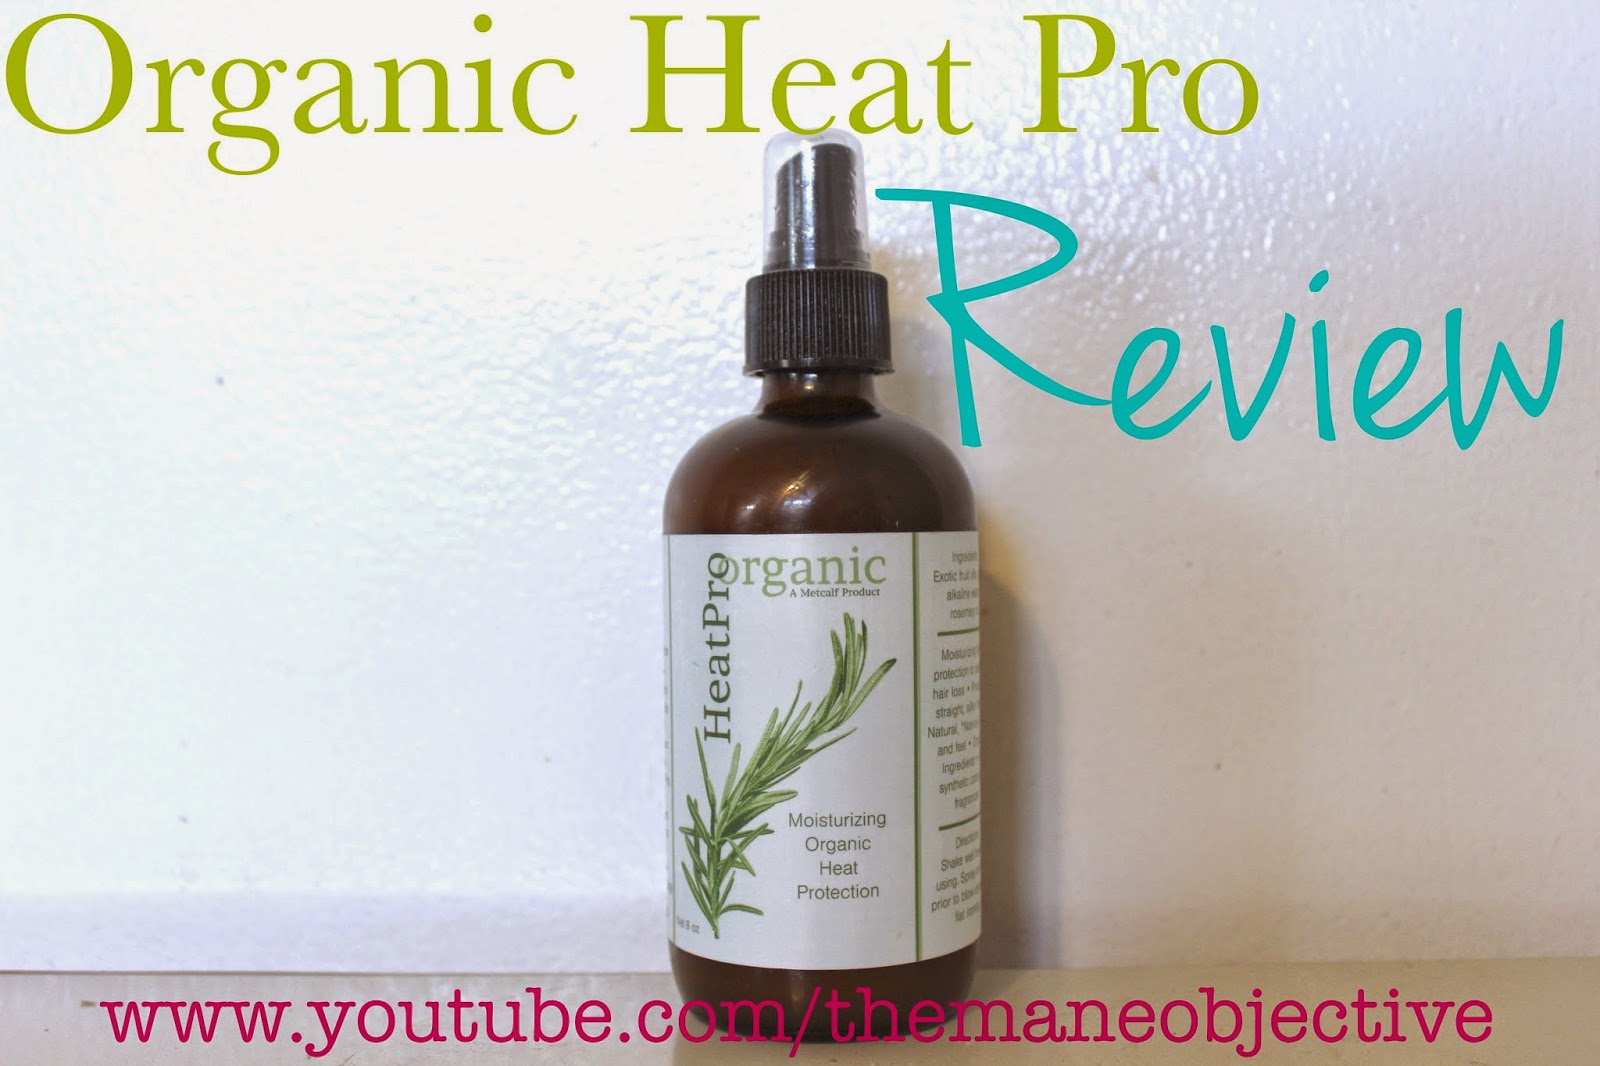 The Mane Objective All Natural Protection Organic Heat Pro Heat